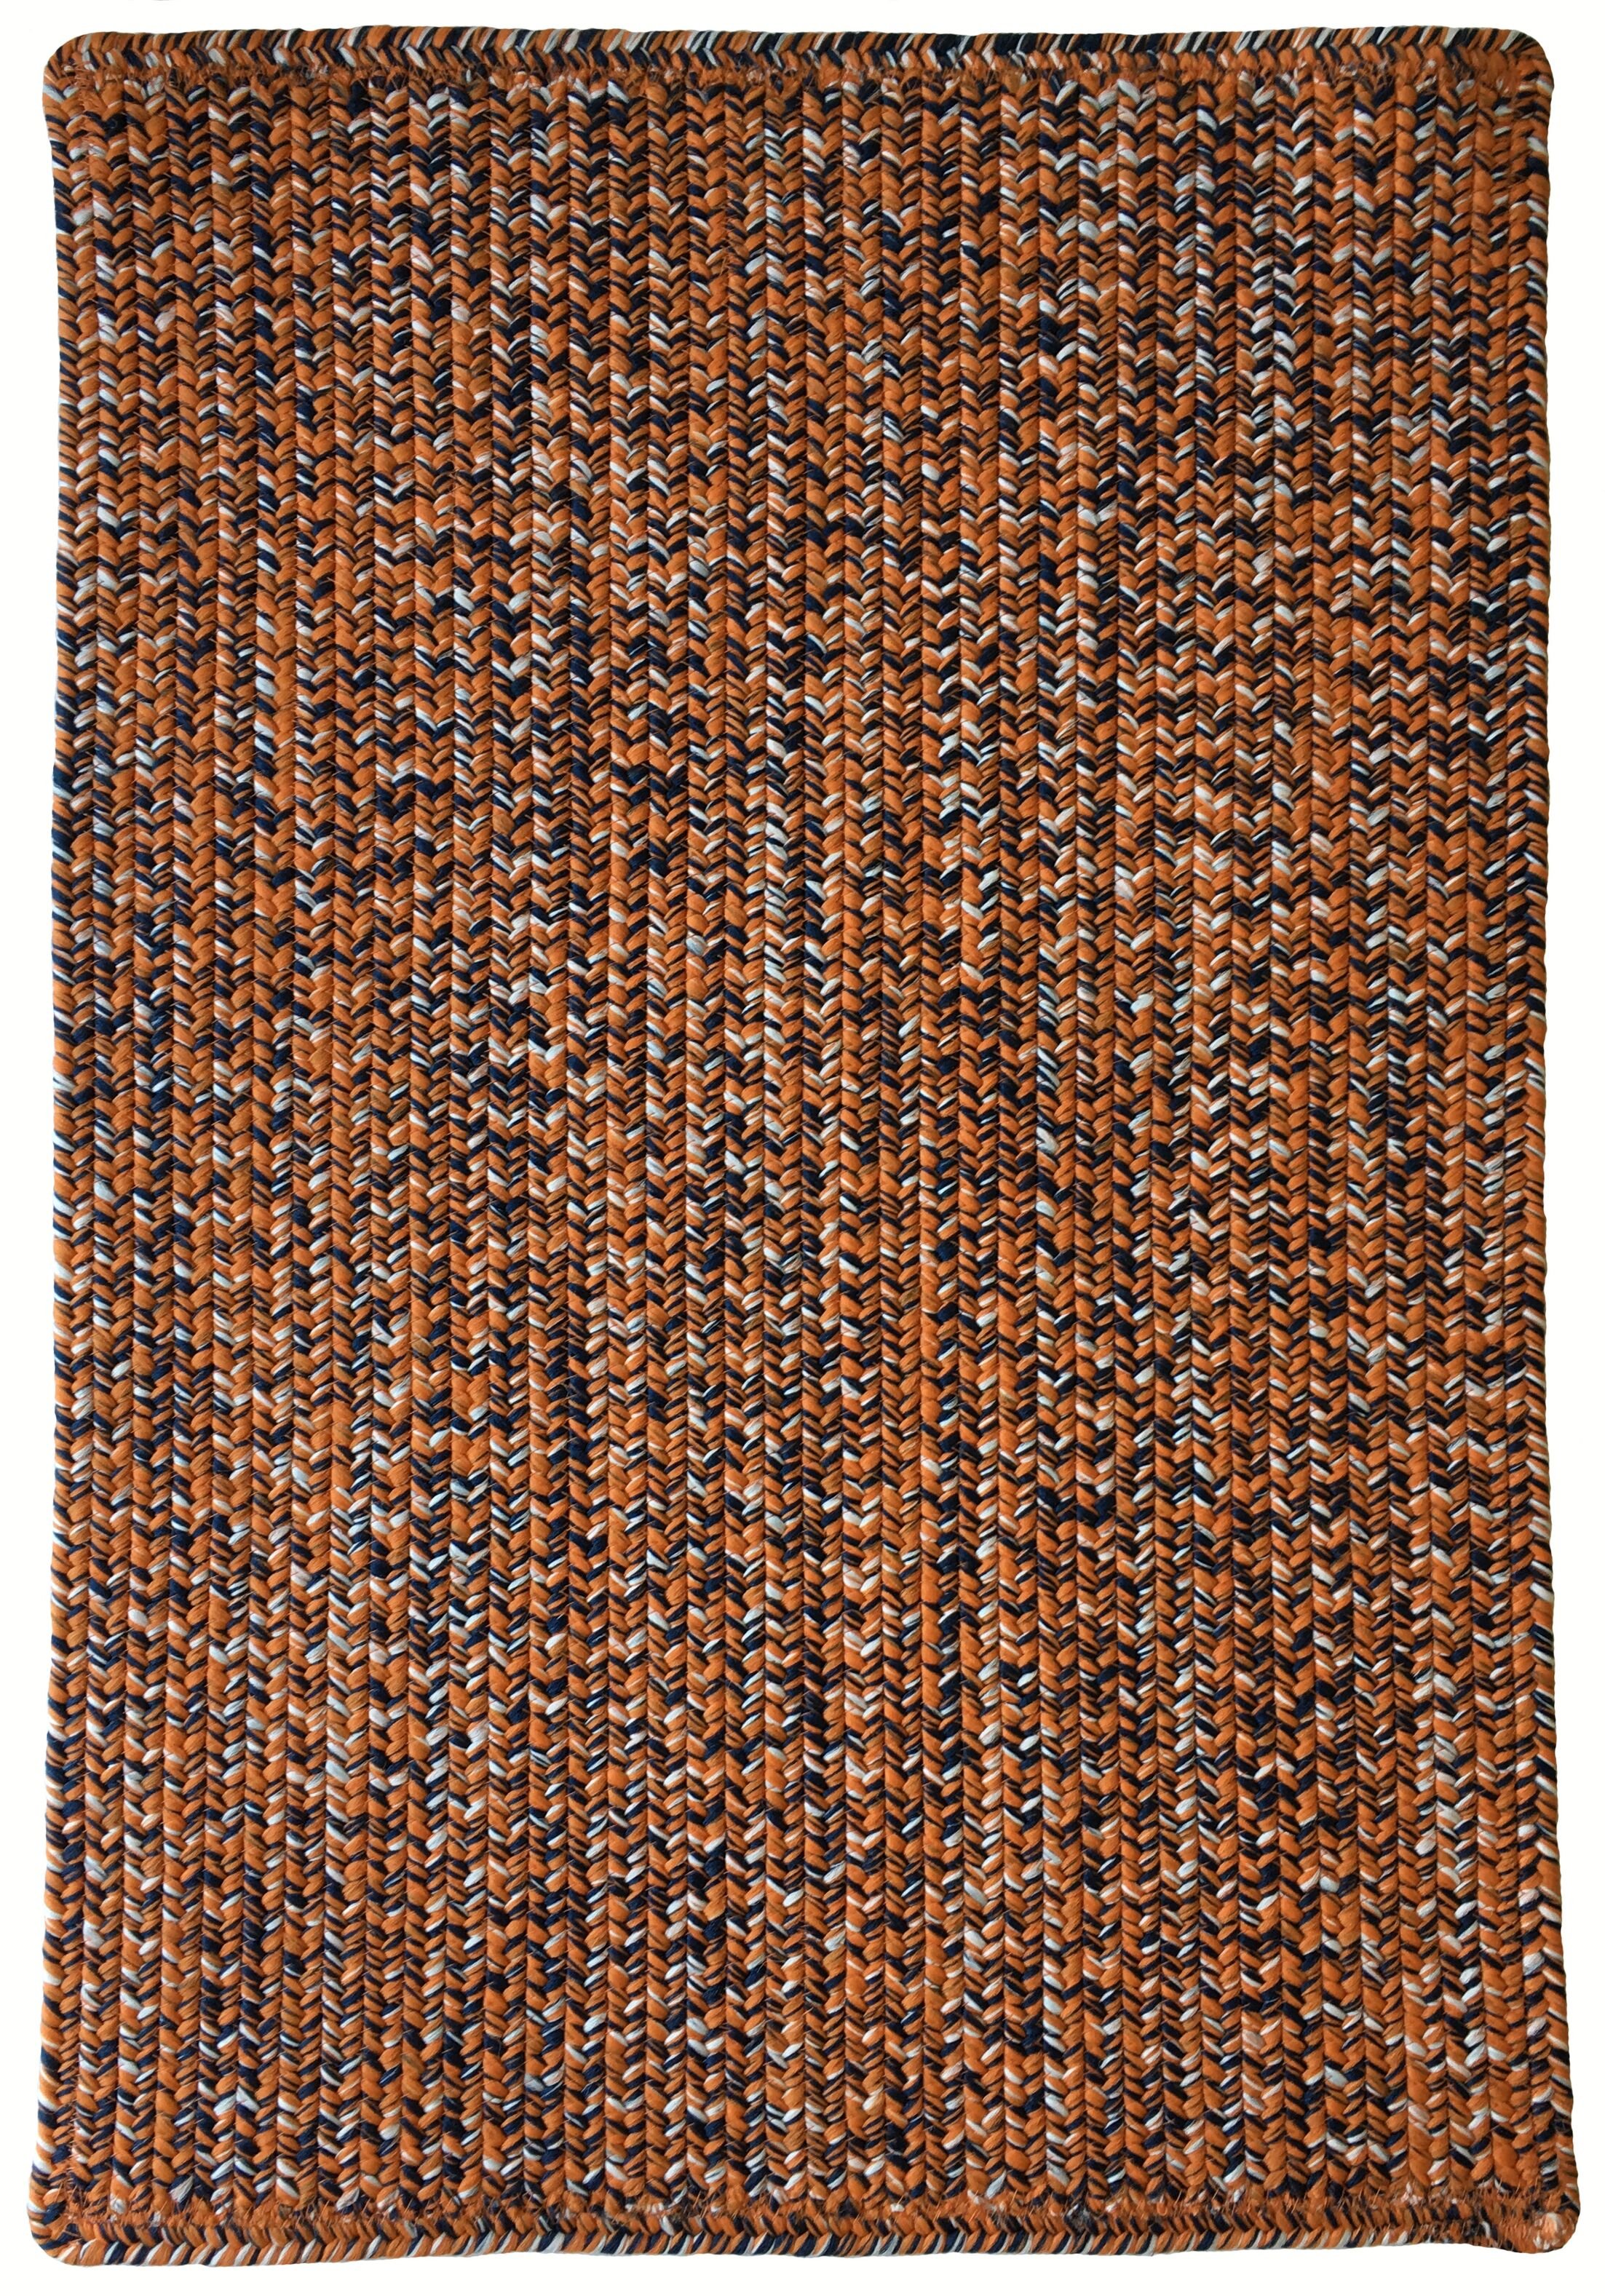 One-of-a-Kind Aukerman Hand-Braided Orange/Navy Indoor/Outdoor Area Rug Rug Size: Rectangle 7' x 9'